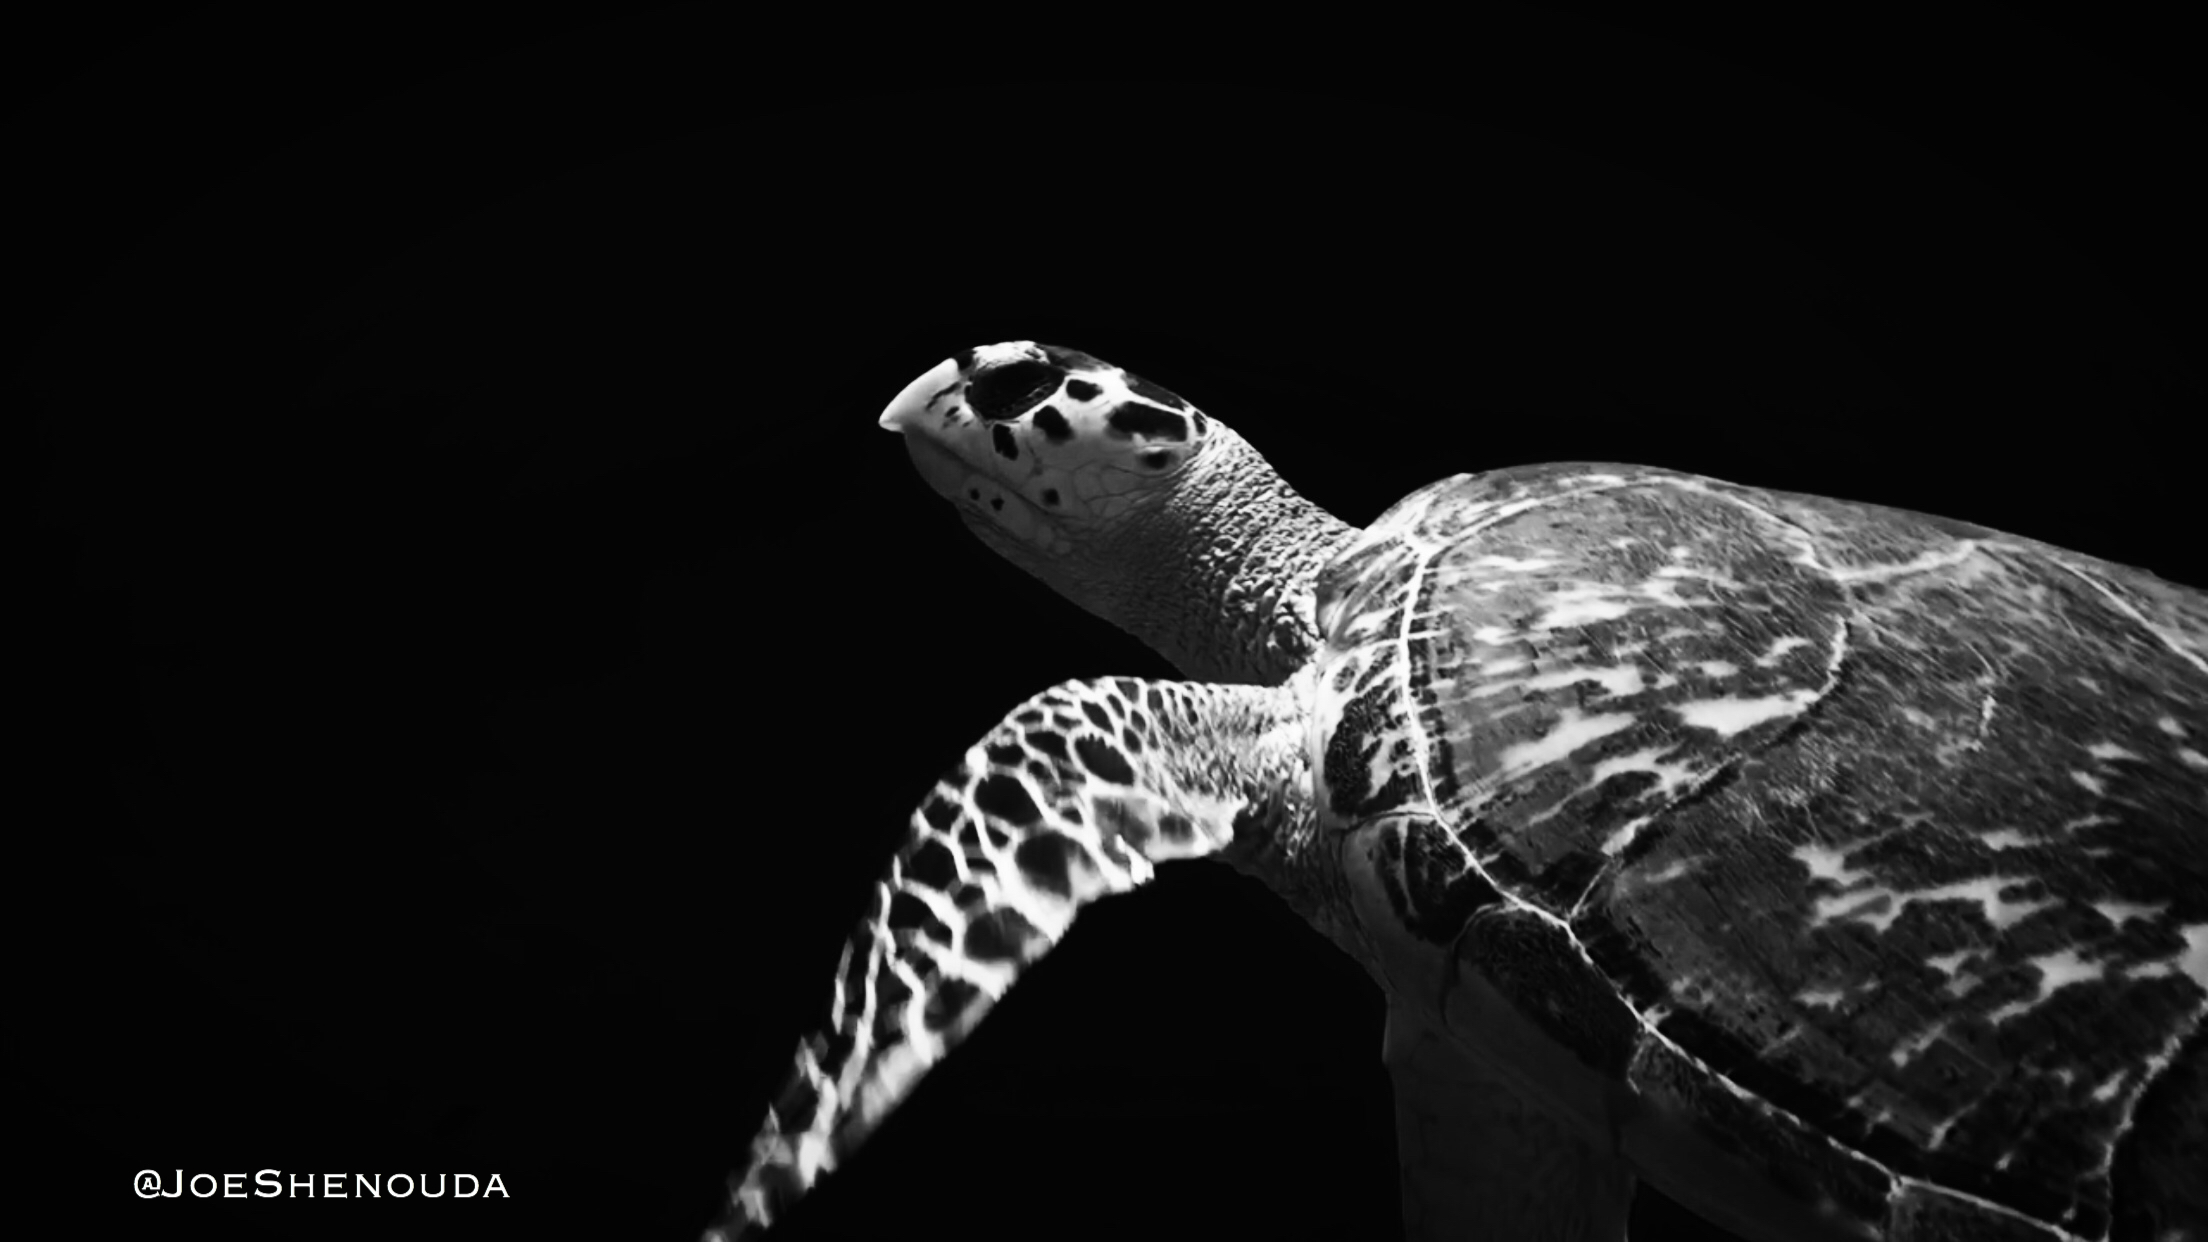 Did you know that the Hawksbill Sea Turtle is the most endangered type of turtle?